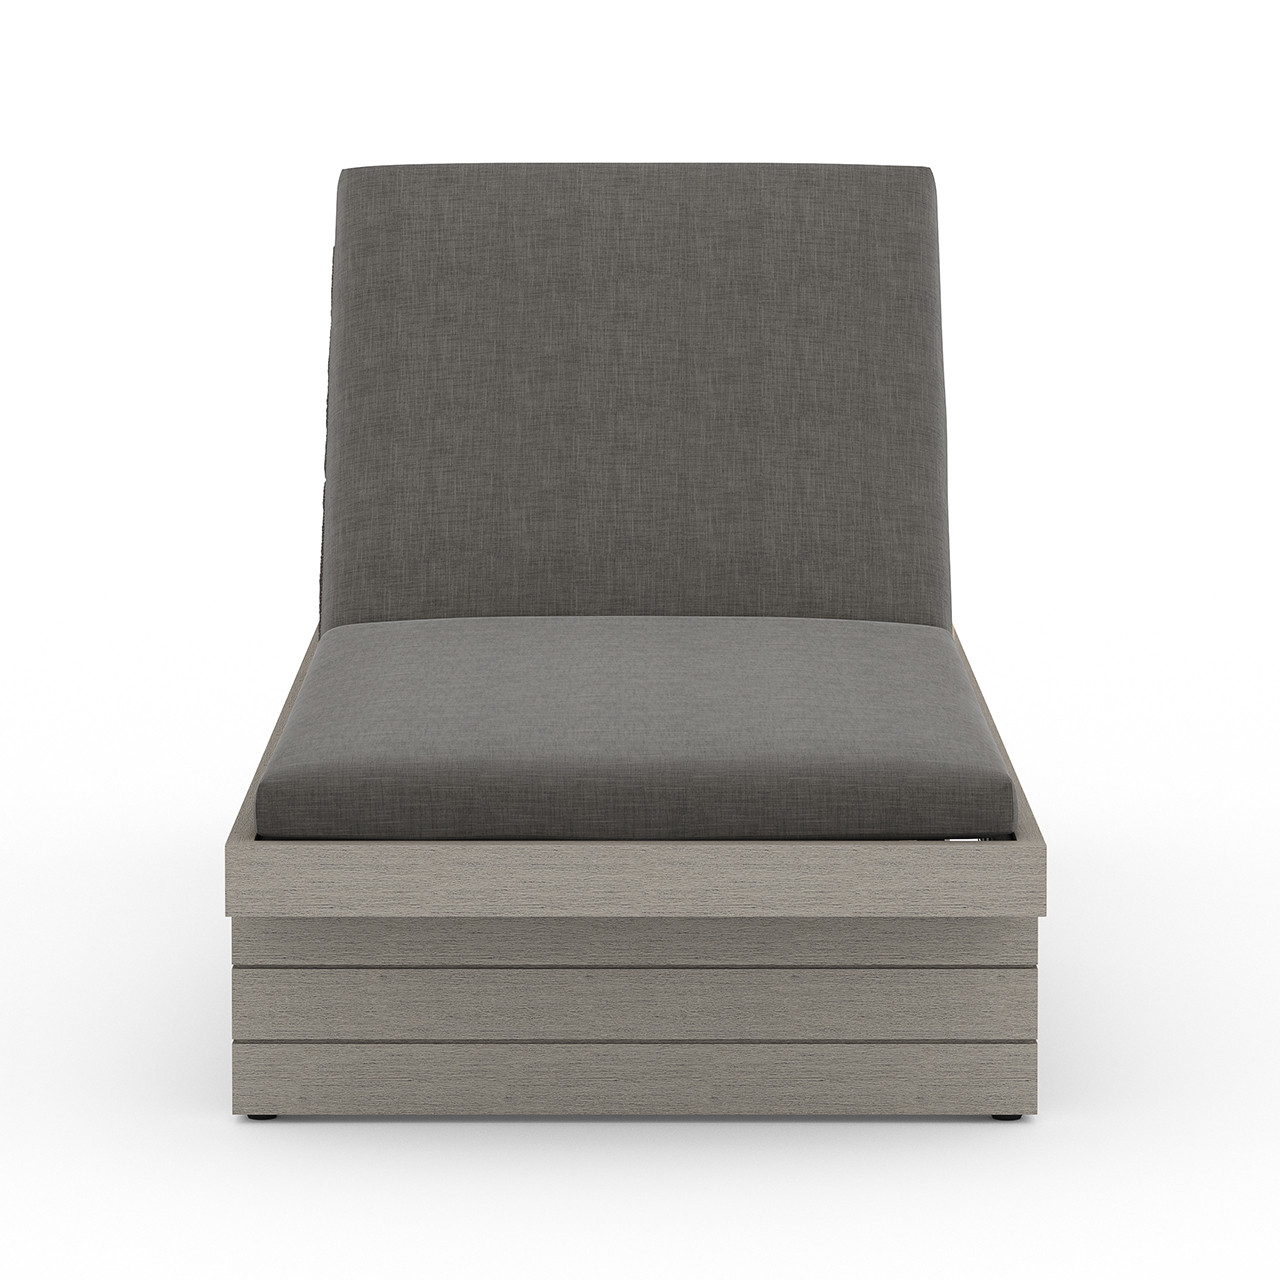 Leroy Outdoor Chaise - Grey/Charcoal